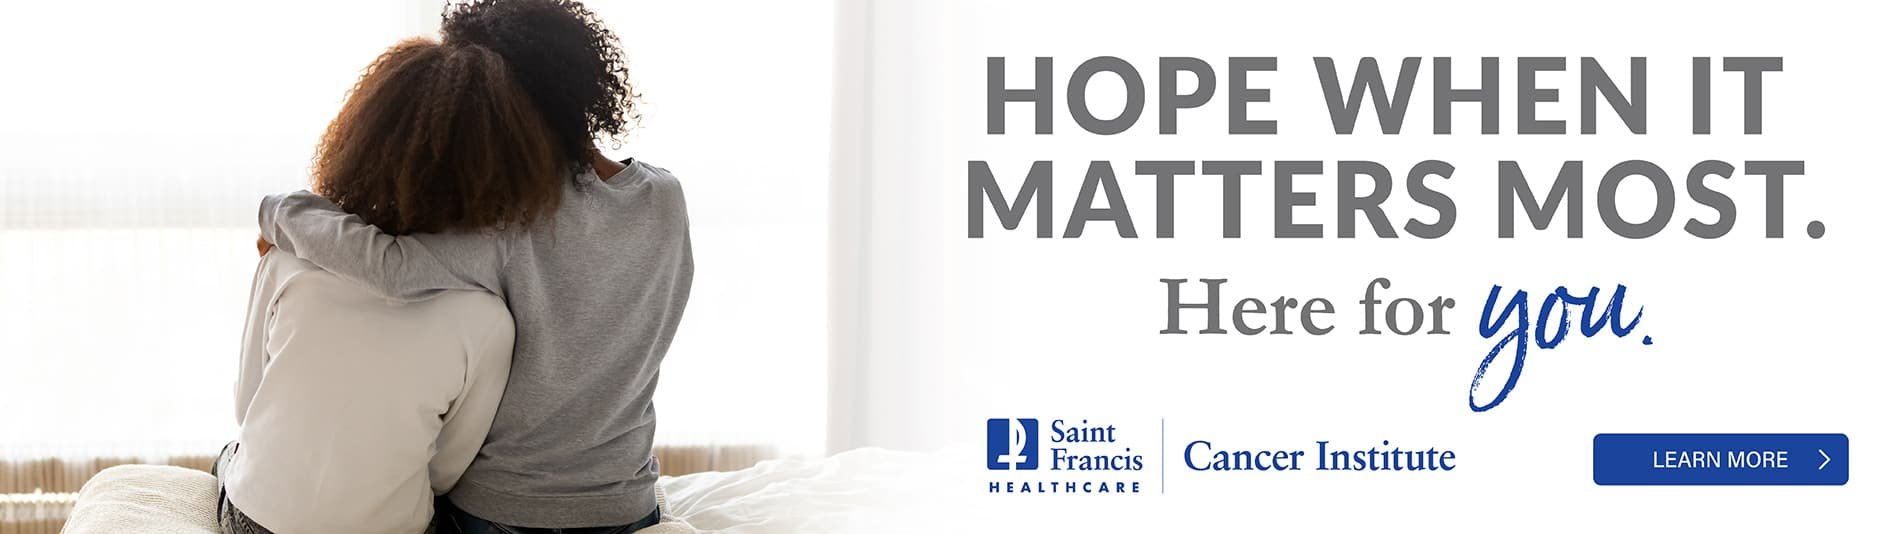 Saint Francis Cancer Institute - Hope When it Matters Most, Here for You. Click to learn more.